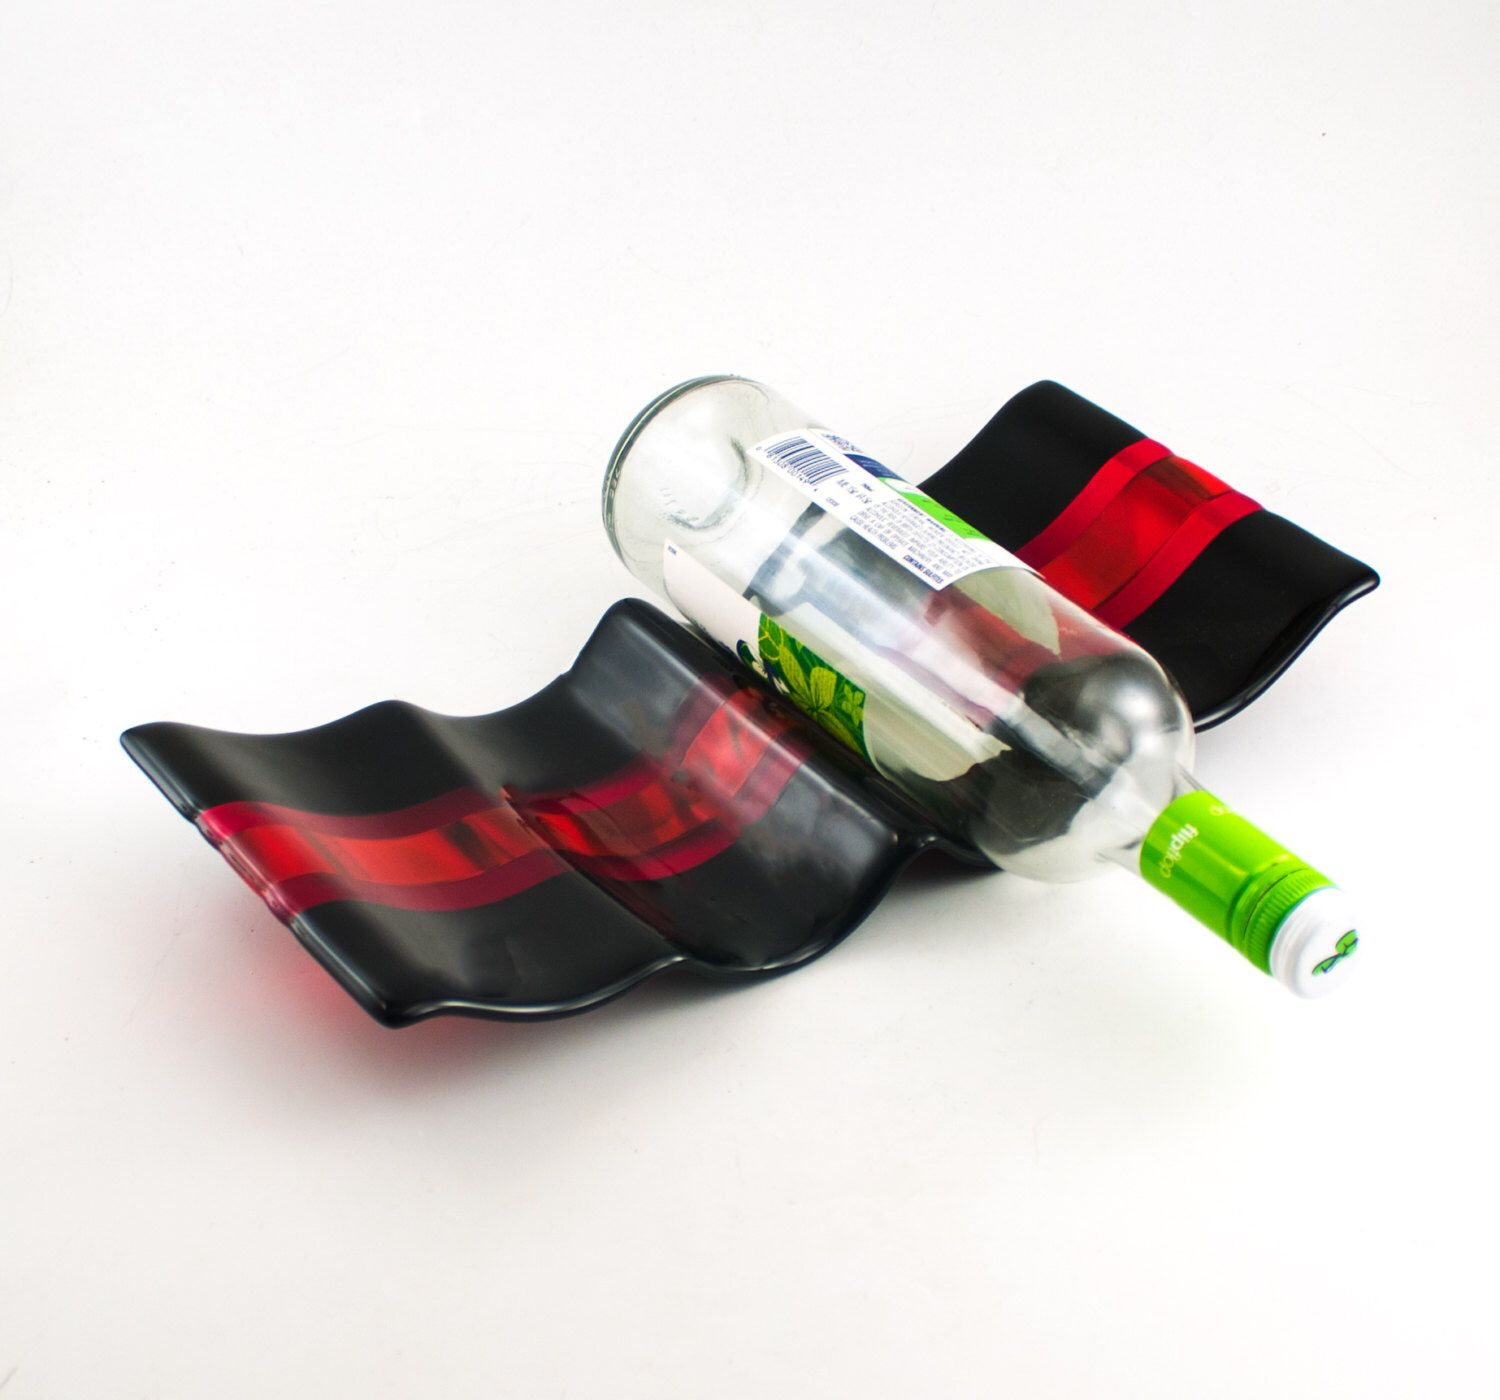 Black and Red Fused Glass Wine Rack, Modern Wine Storage, Unique Wine Rack, Table Top Display, Countertop Storage, Gifts for Wine Lovers by Nostalgianmore on Etsy https://www.etsy.com/listing/400079531/black-and-red-fused-glass-wine-rack